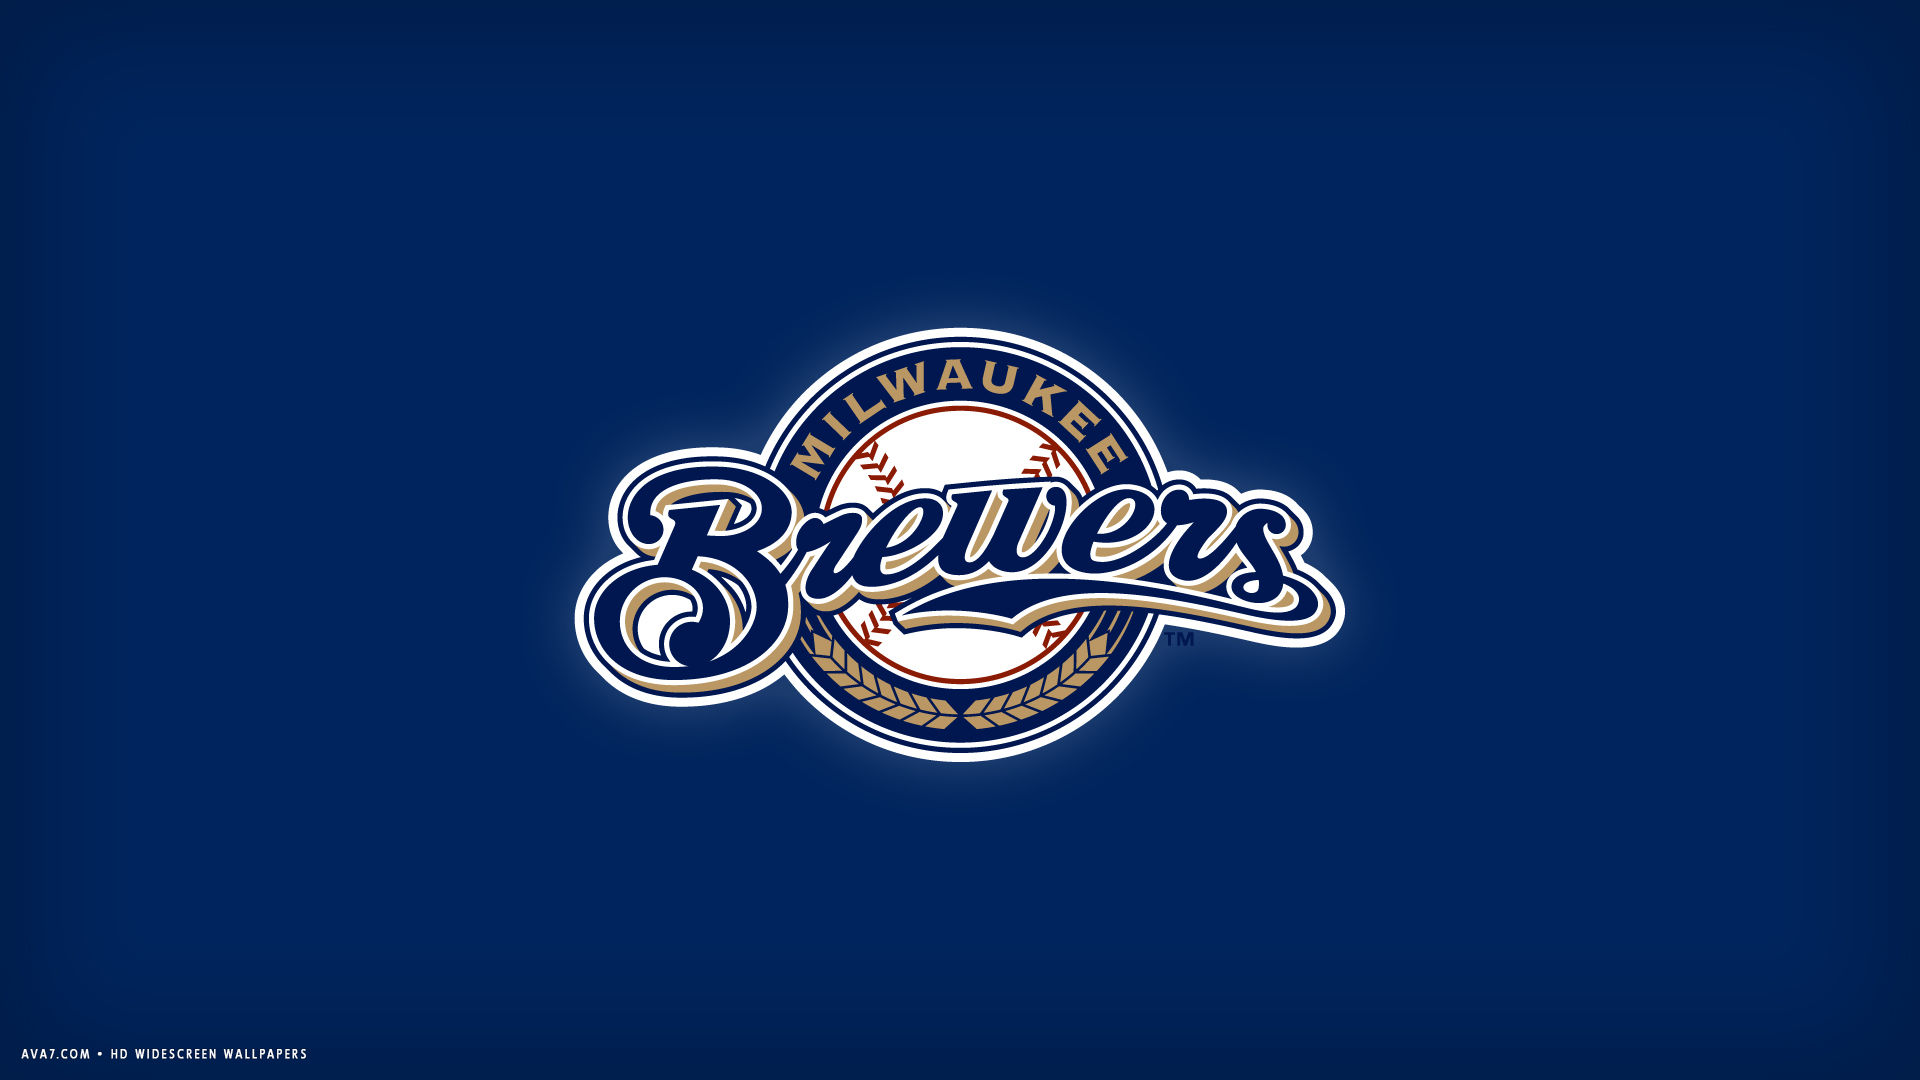 milwaukee brewers mlb baseball team hd widescreen wallpaper